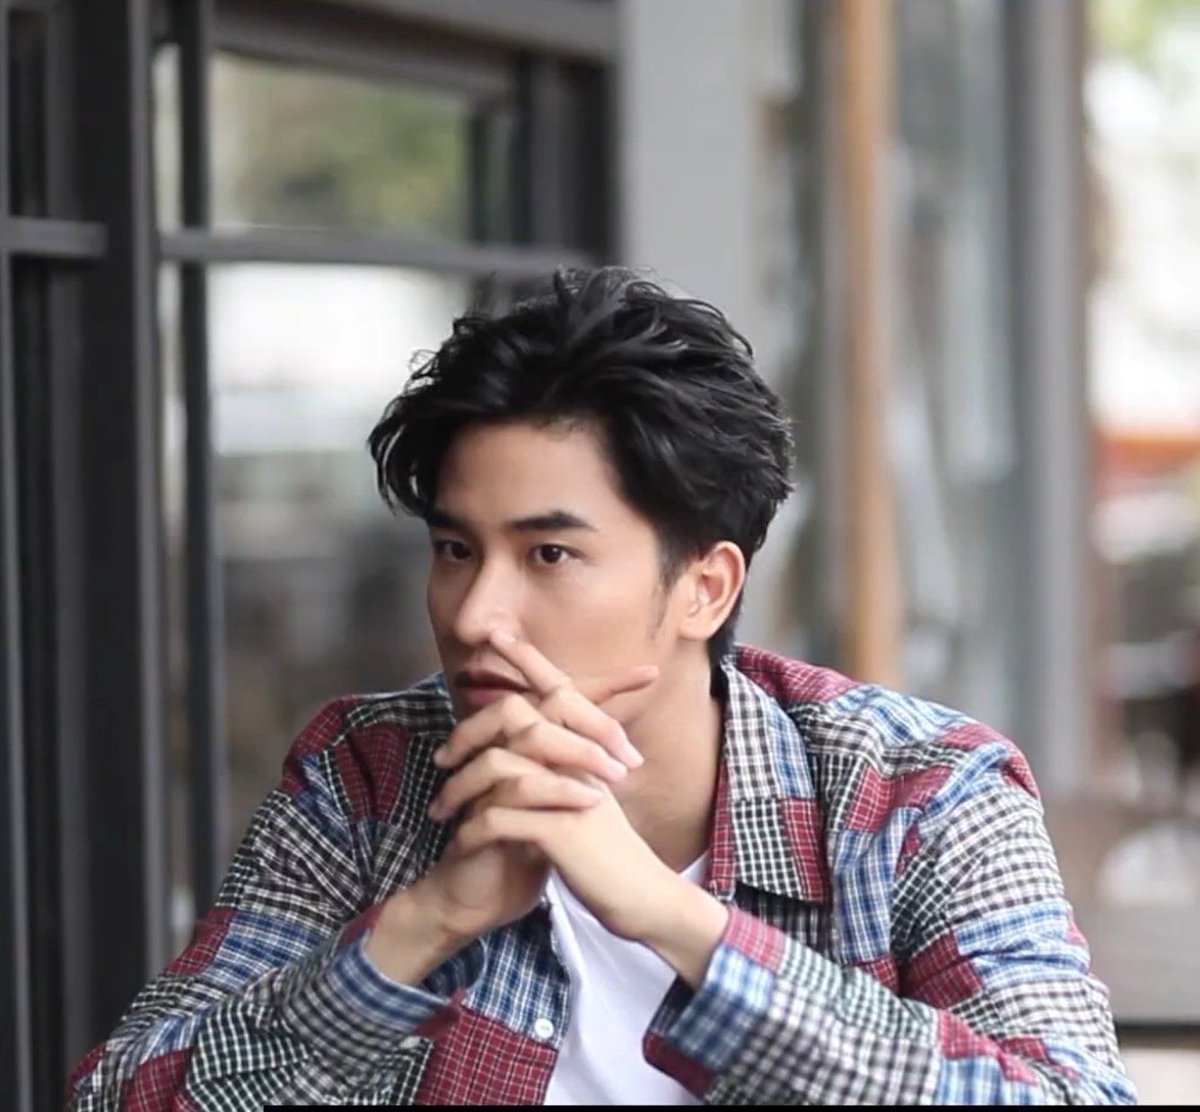 Day 31 - It's the last day  (it's also the day I finally realized that July has 31 days and I've been using #30daysofTayPickupLines lol)  The last pickup line - Are you from Krypton, too, or are you just naturally this super?  #julyfortaytawan #ชาวบ้านpic.twitter.com/dPEP2v4Rmw